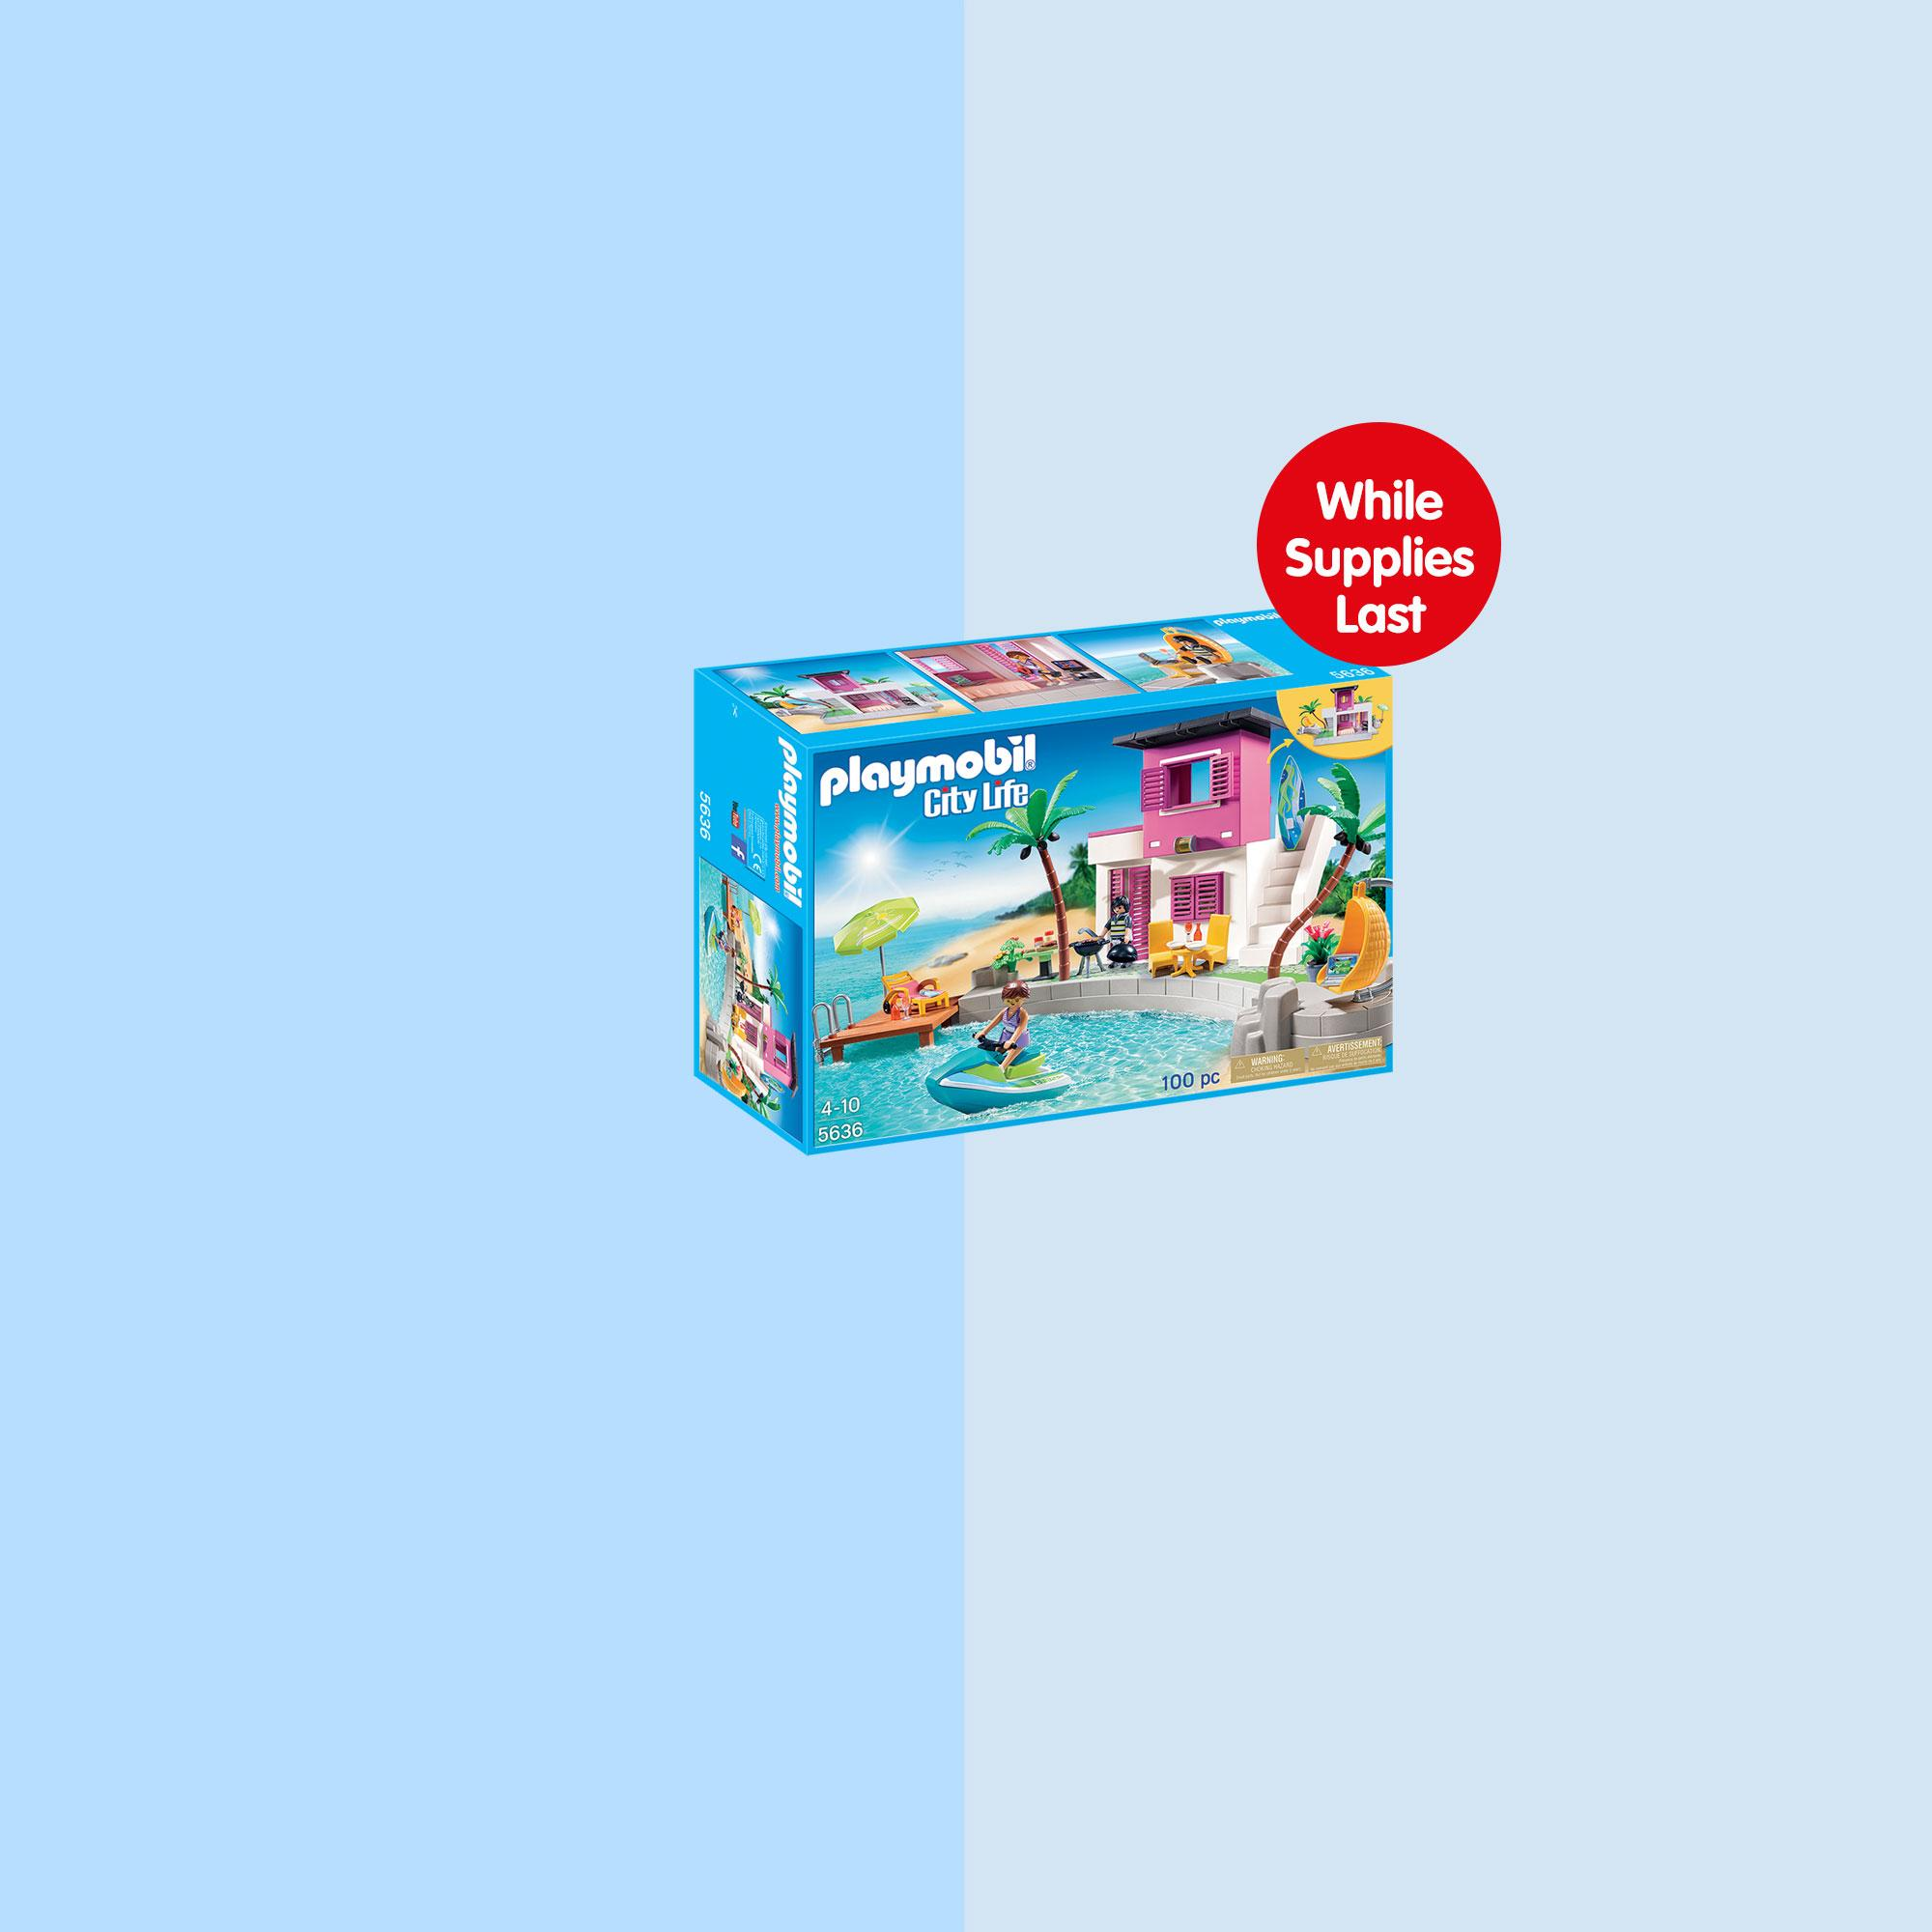 PLAYMOBIL - 20% off coupon cod...